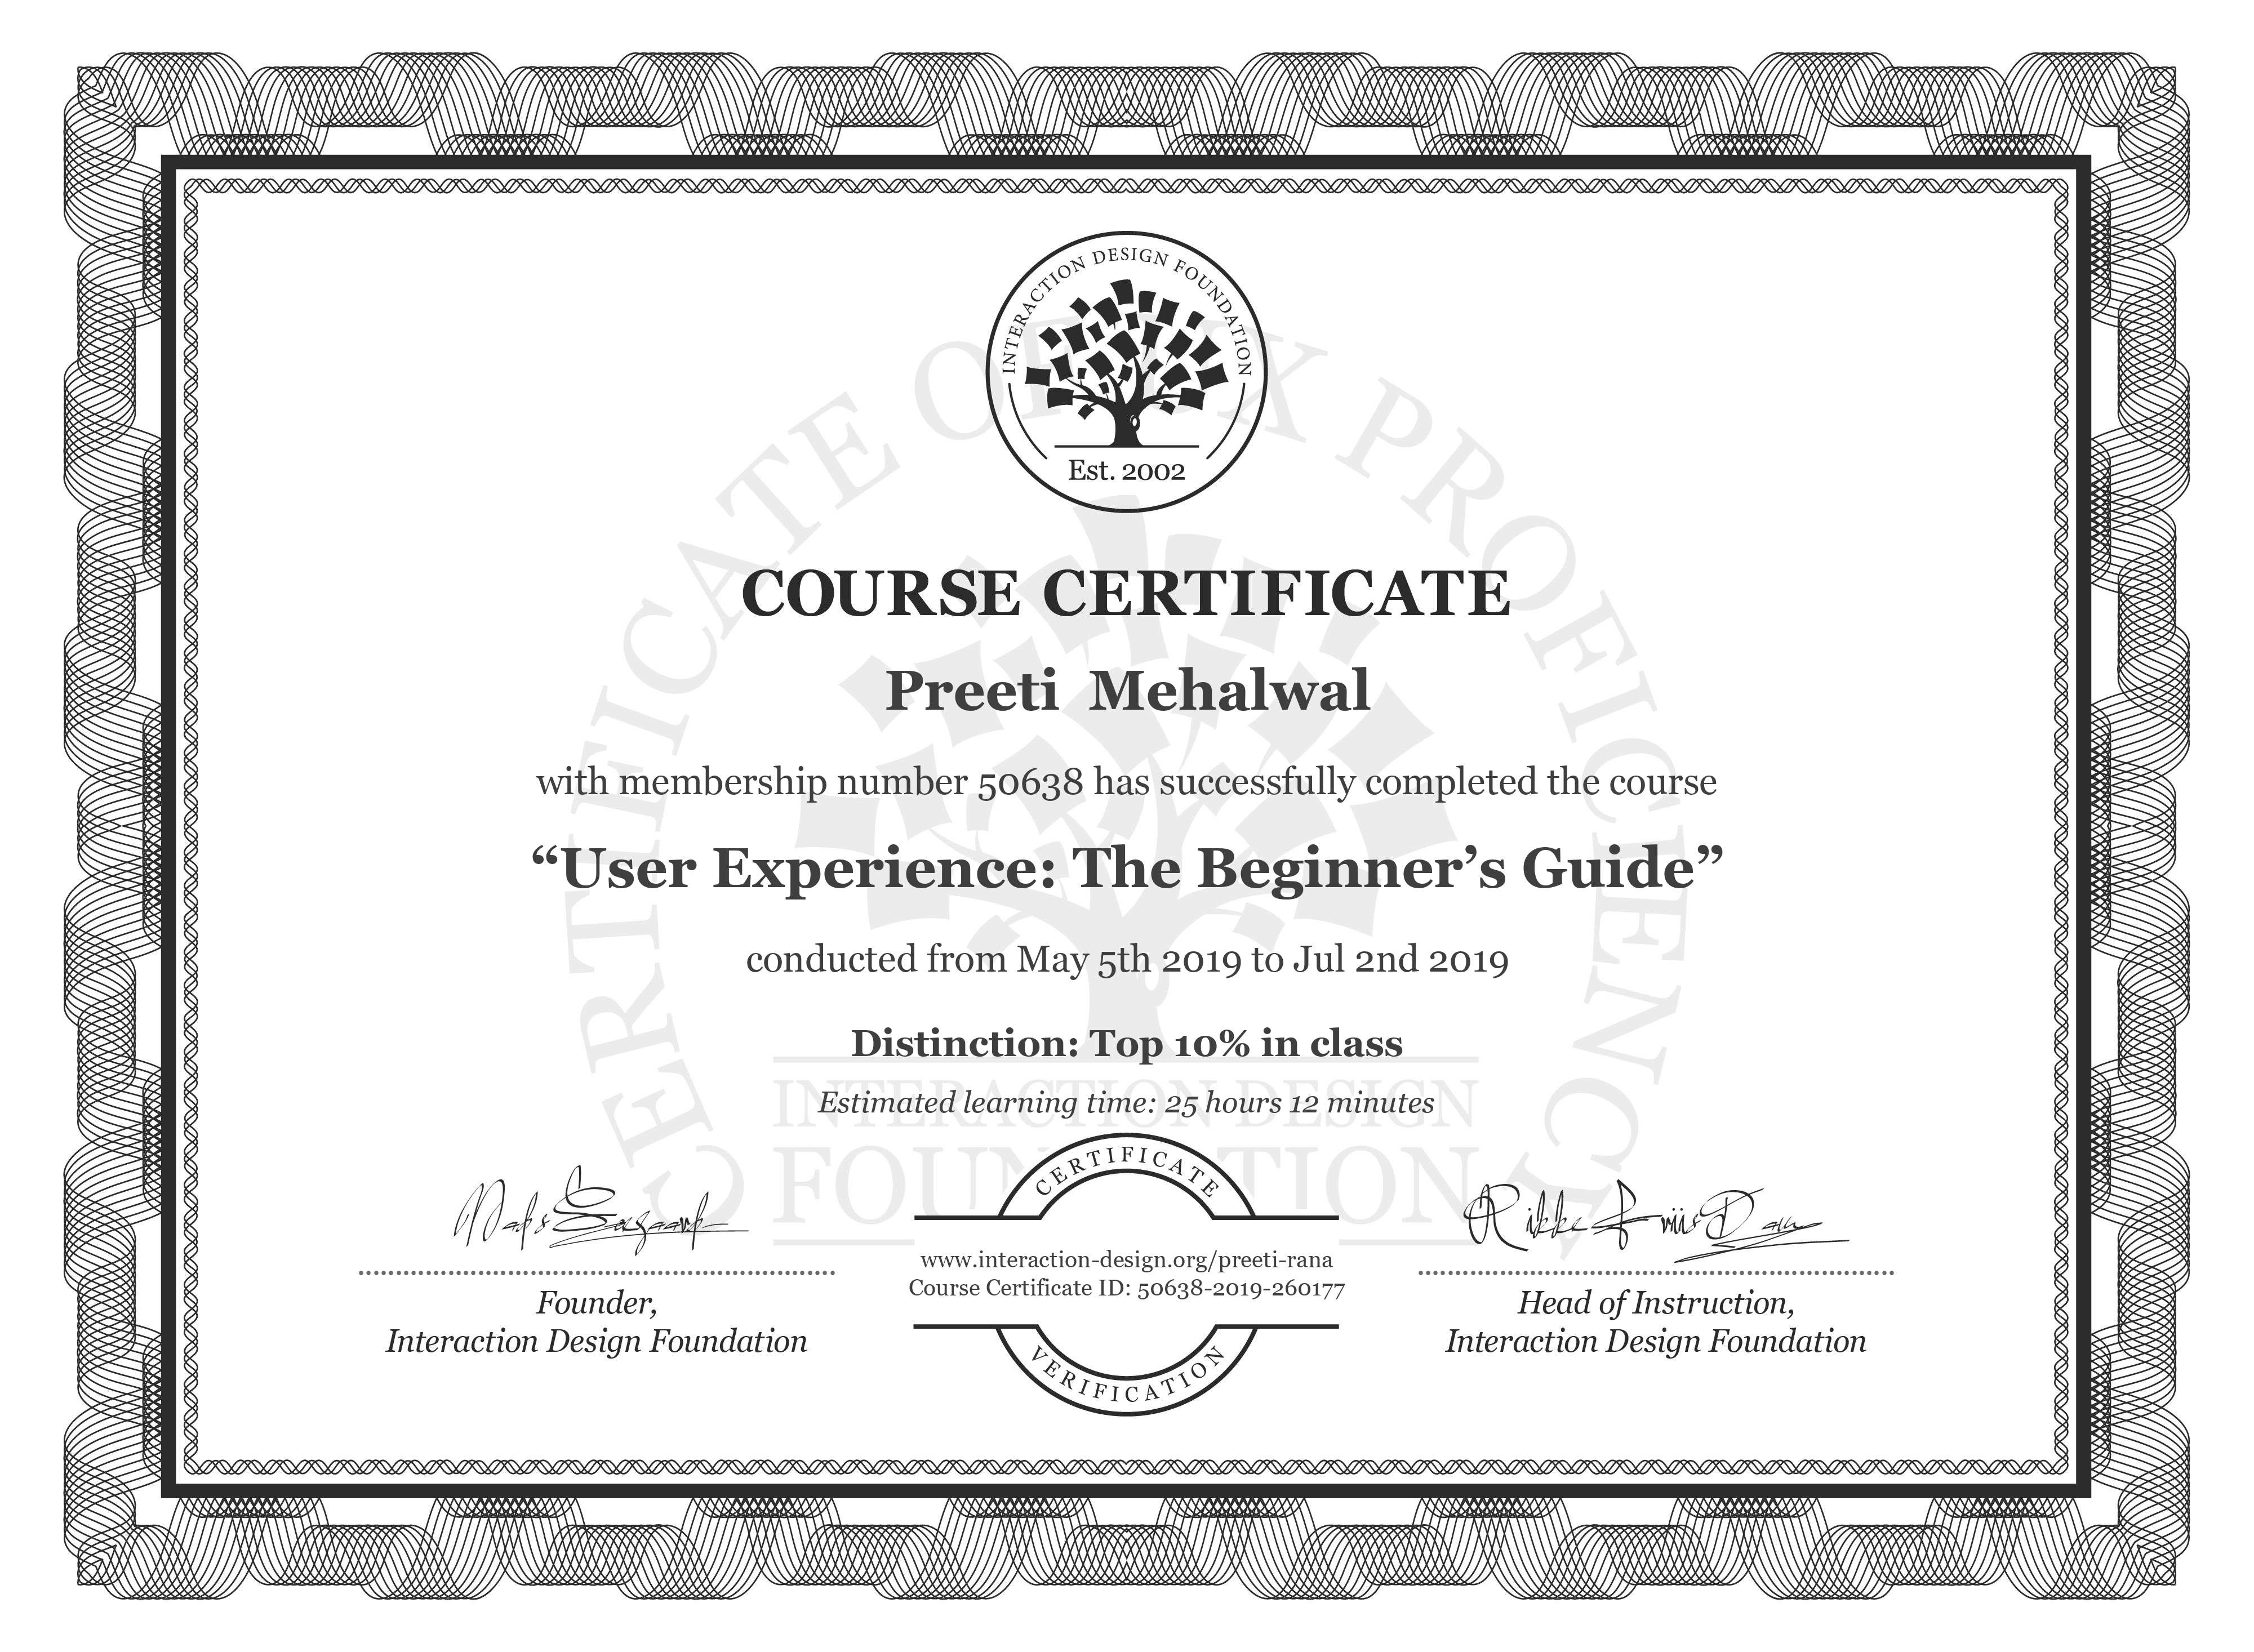 Preeti  Mehalwal's Course Certificate: Become a UX Designer from Scratch